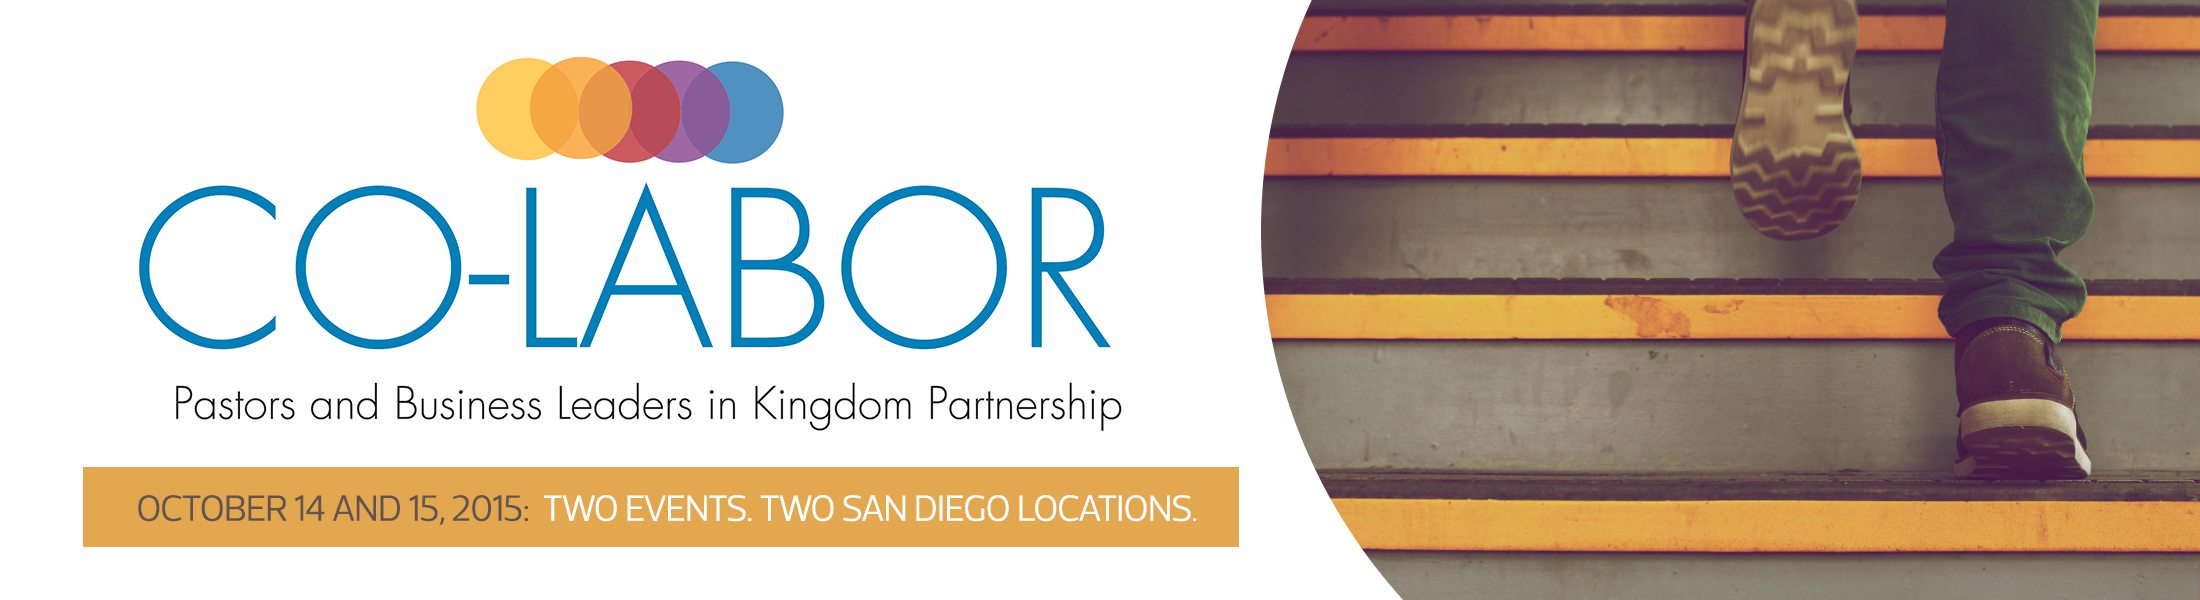 Co-Labor Events in San Diego